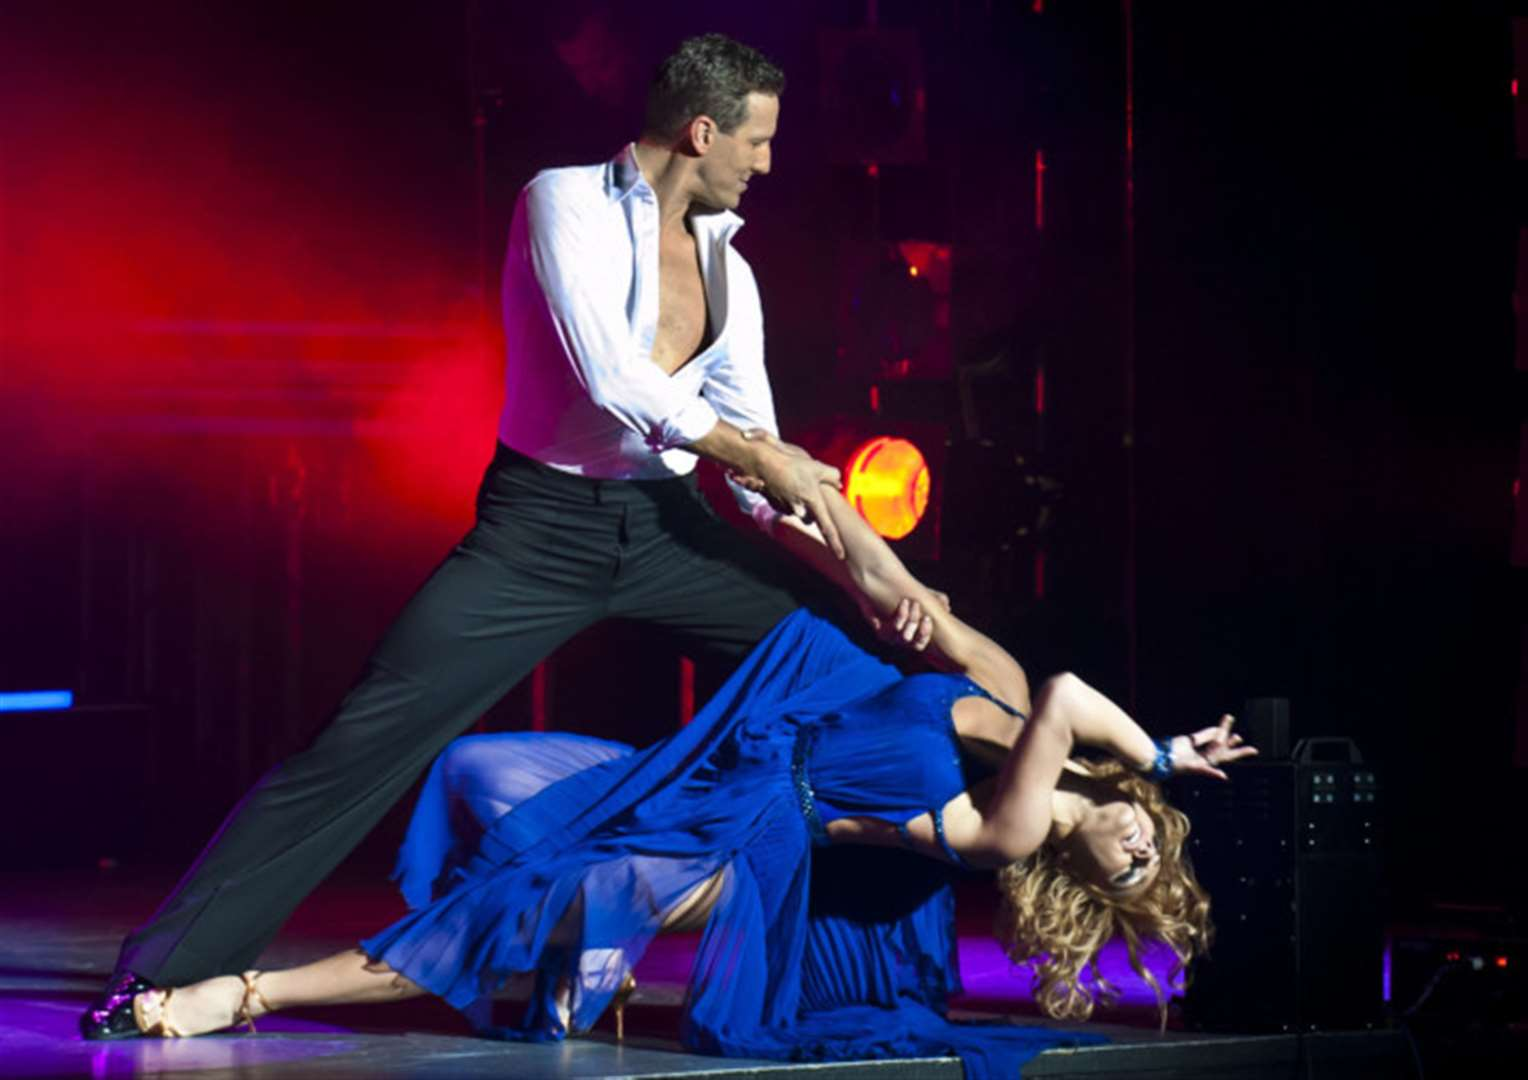 Star of Strictly Come Dancing Brendan Cole brings show to Grantham